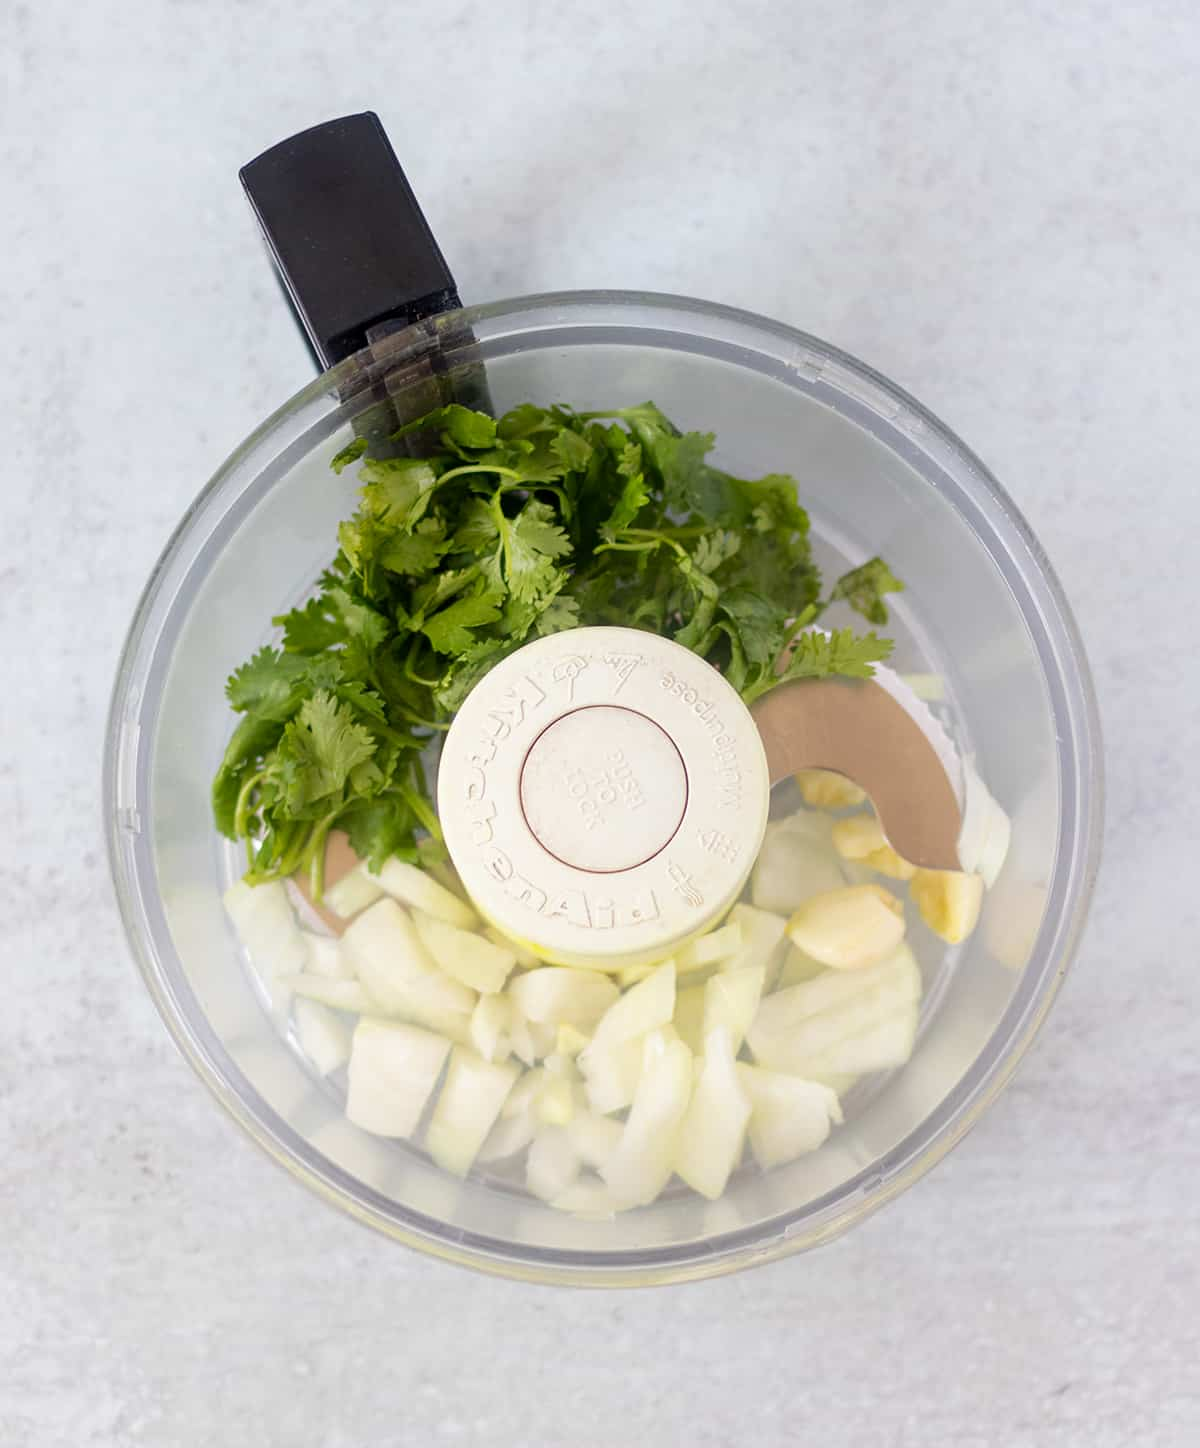 cilantro, onion and garlic in food processor